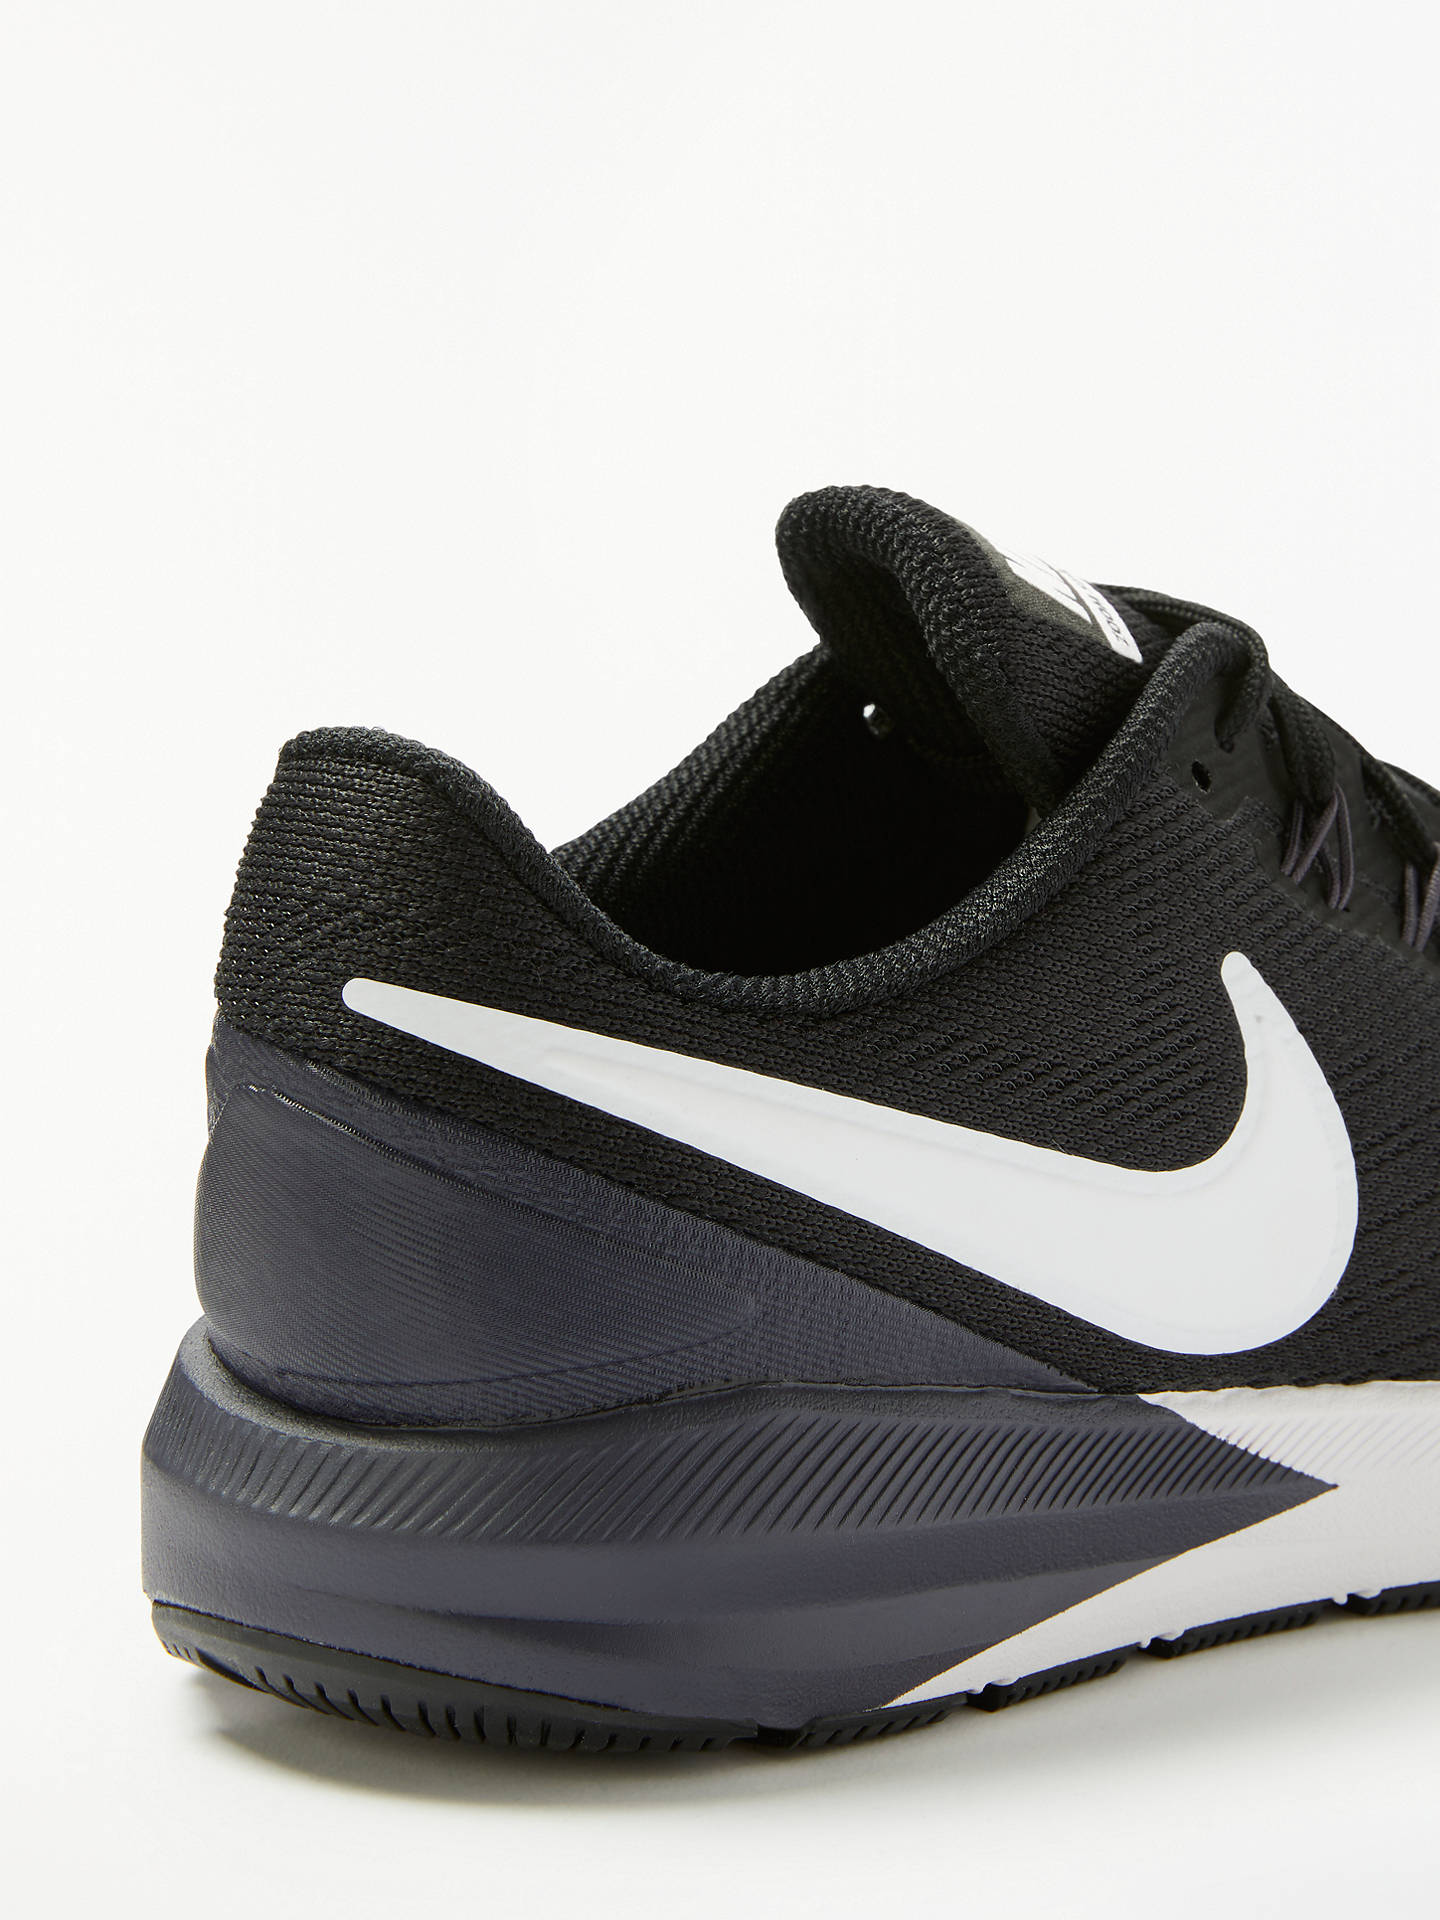 Nike Air Zoom Structure 22 Women's Running Shoes, Black